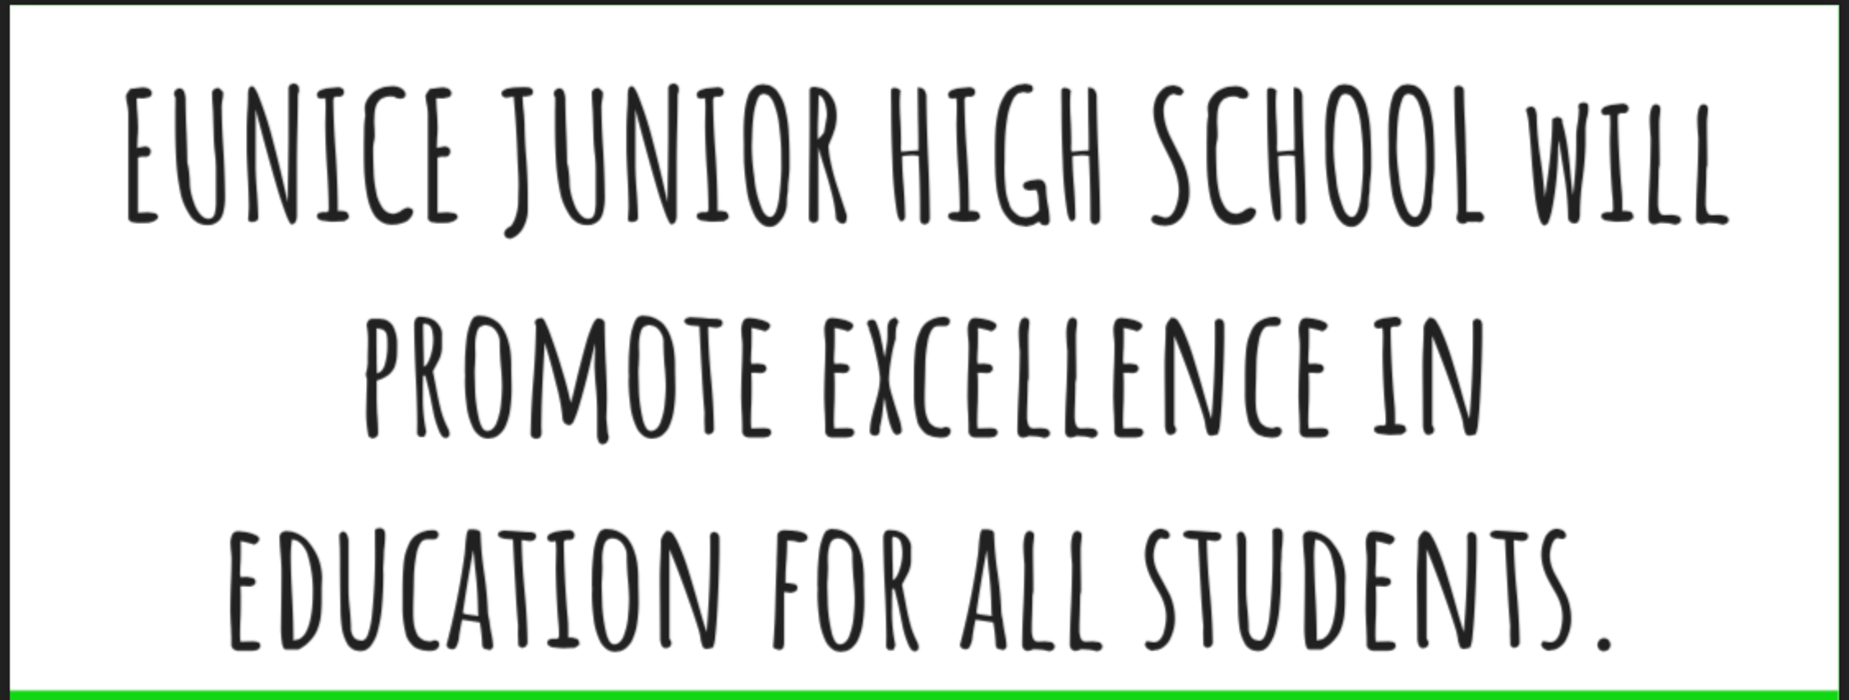 EJHS Vision Statement